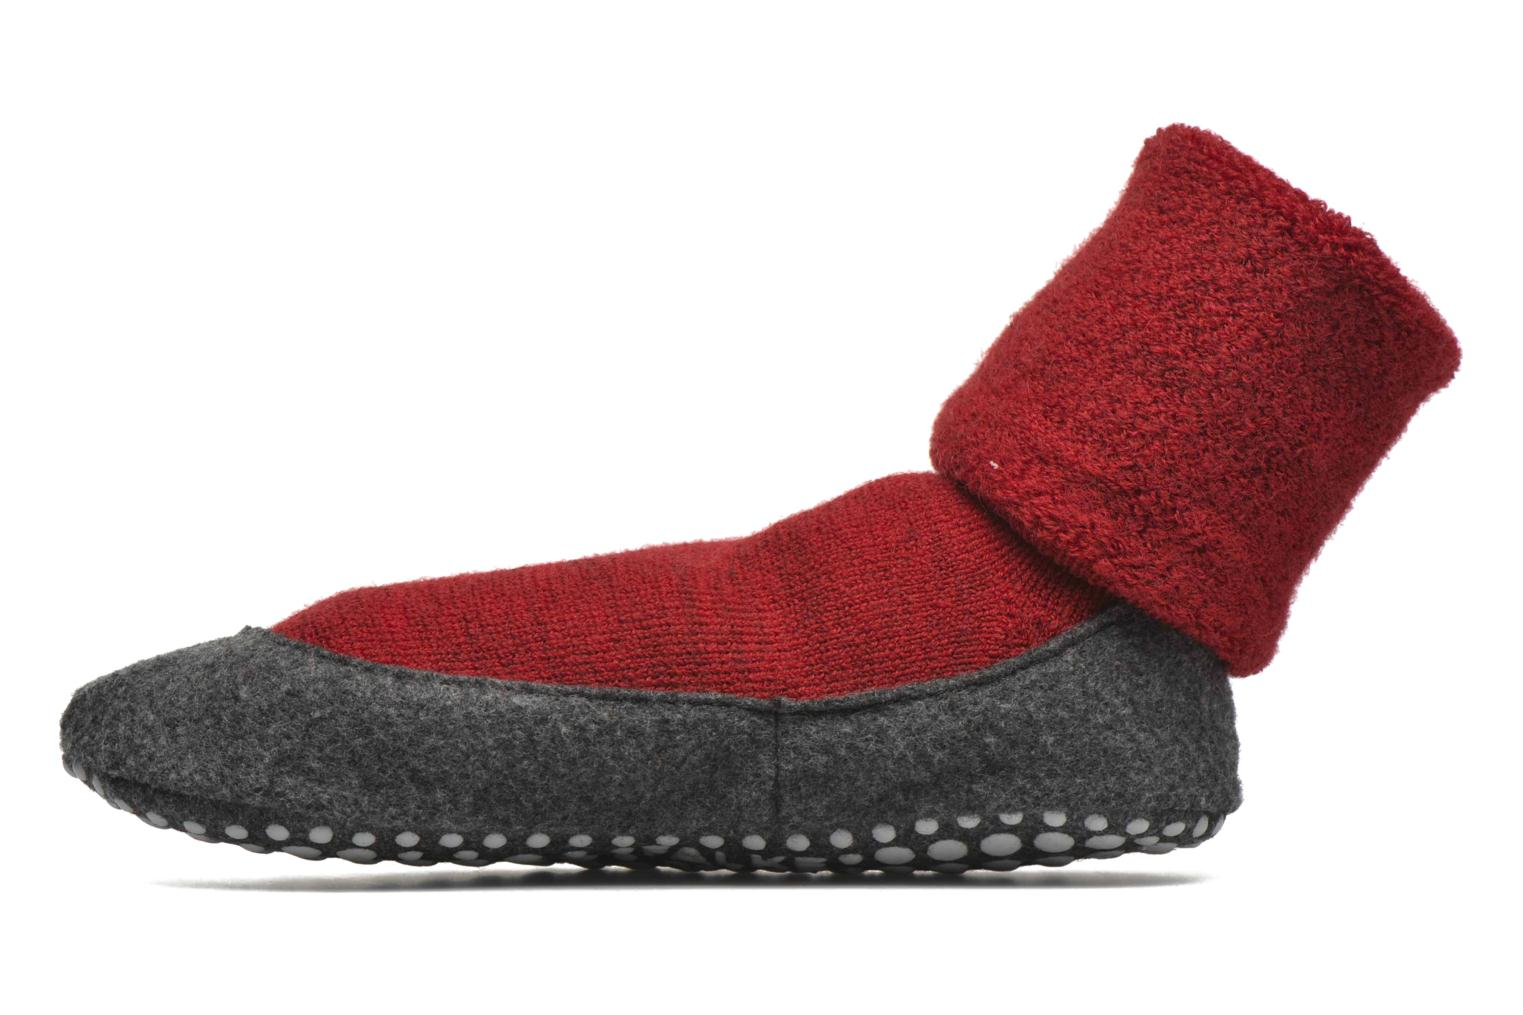 Chaussons-chaussettes Cosyshoes 8150